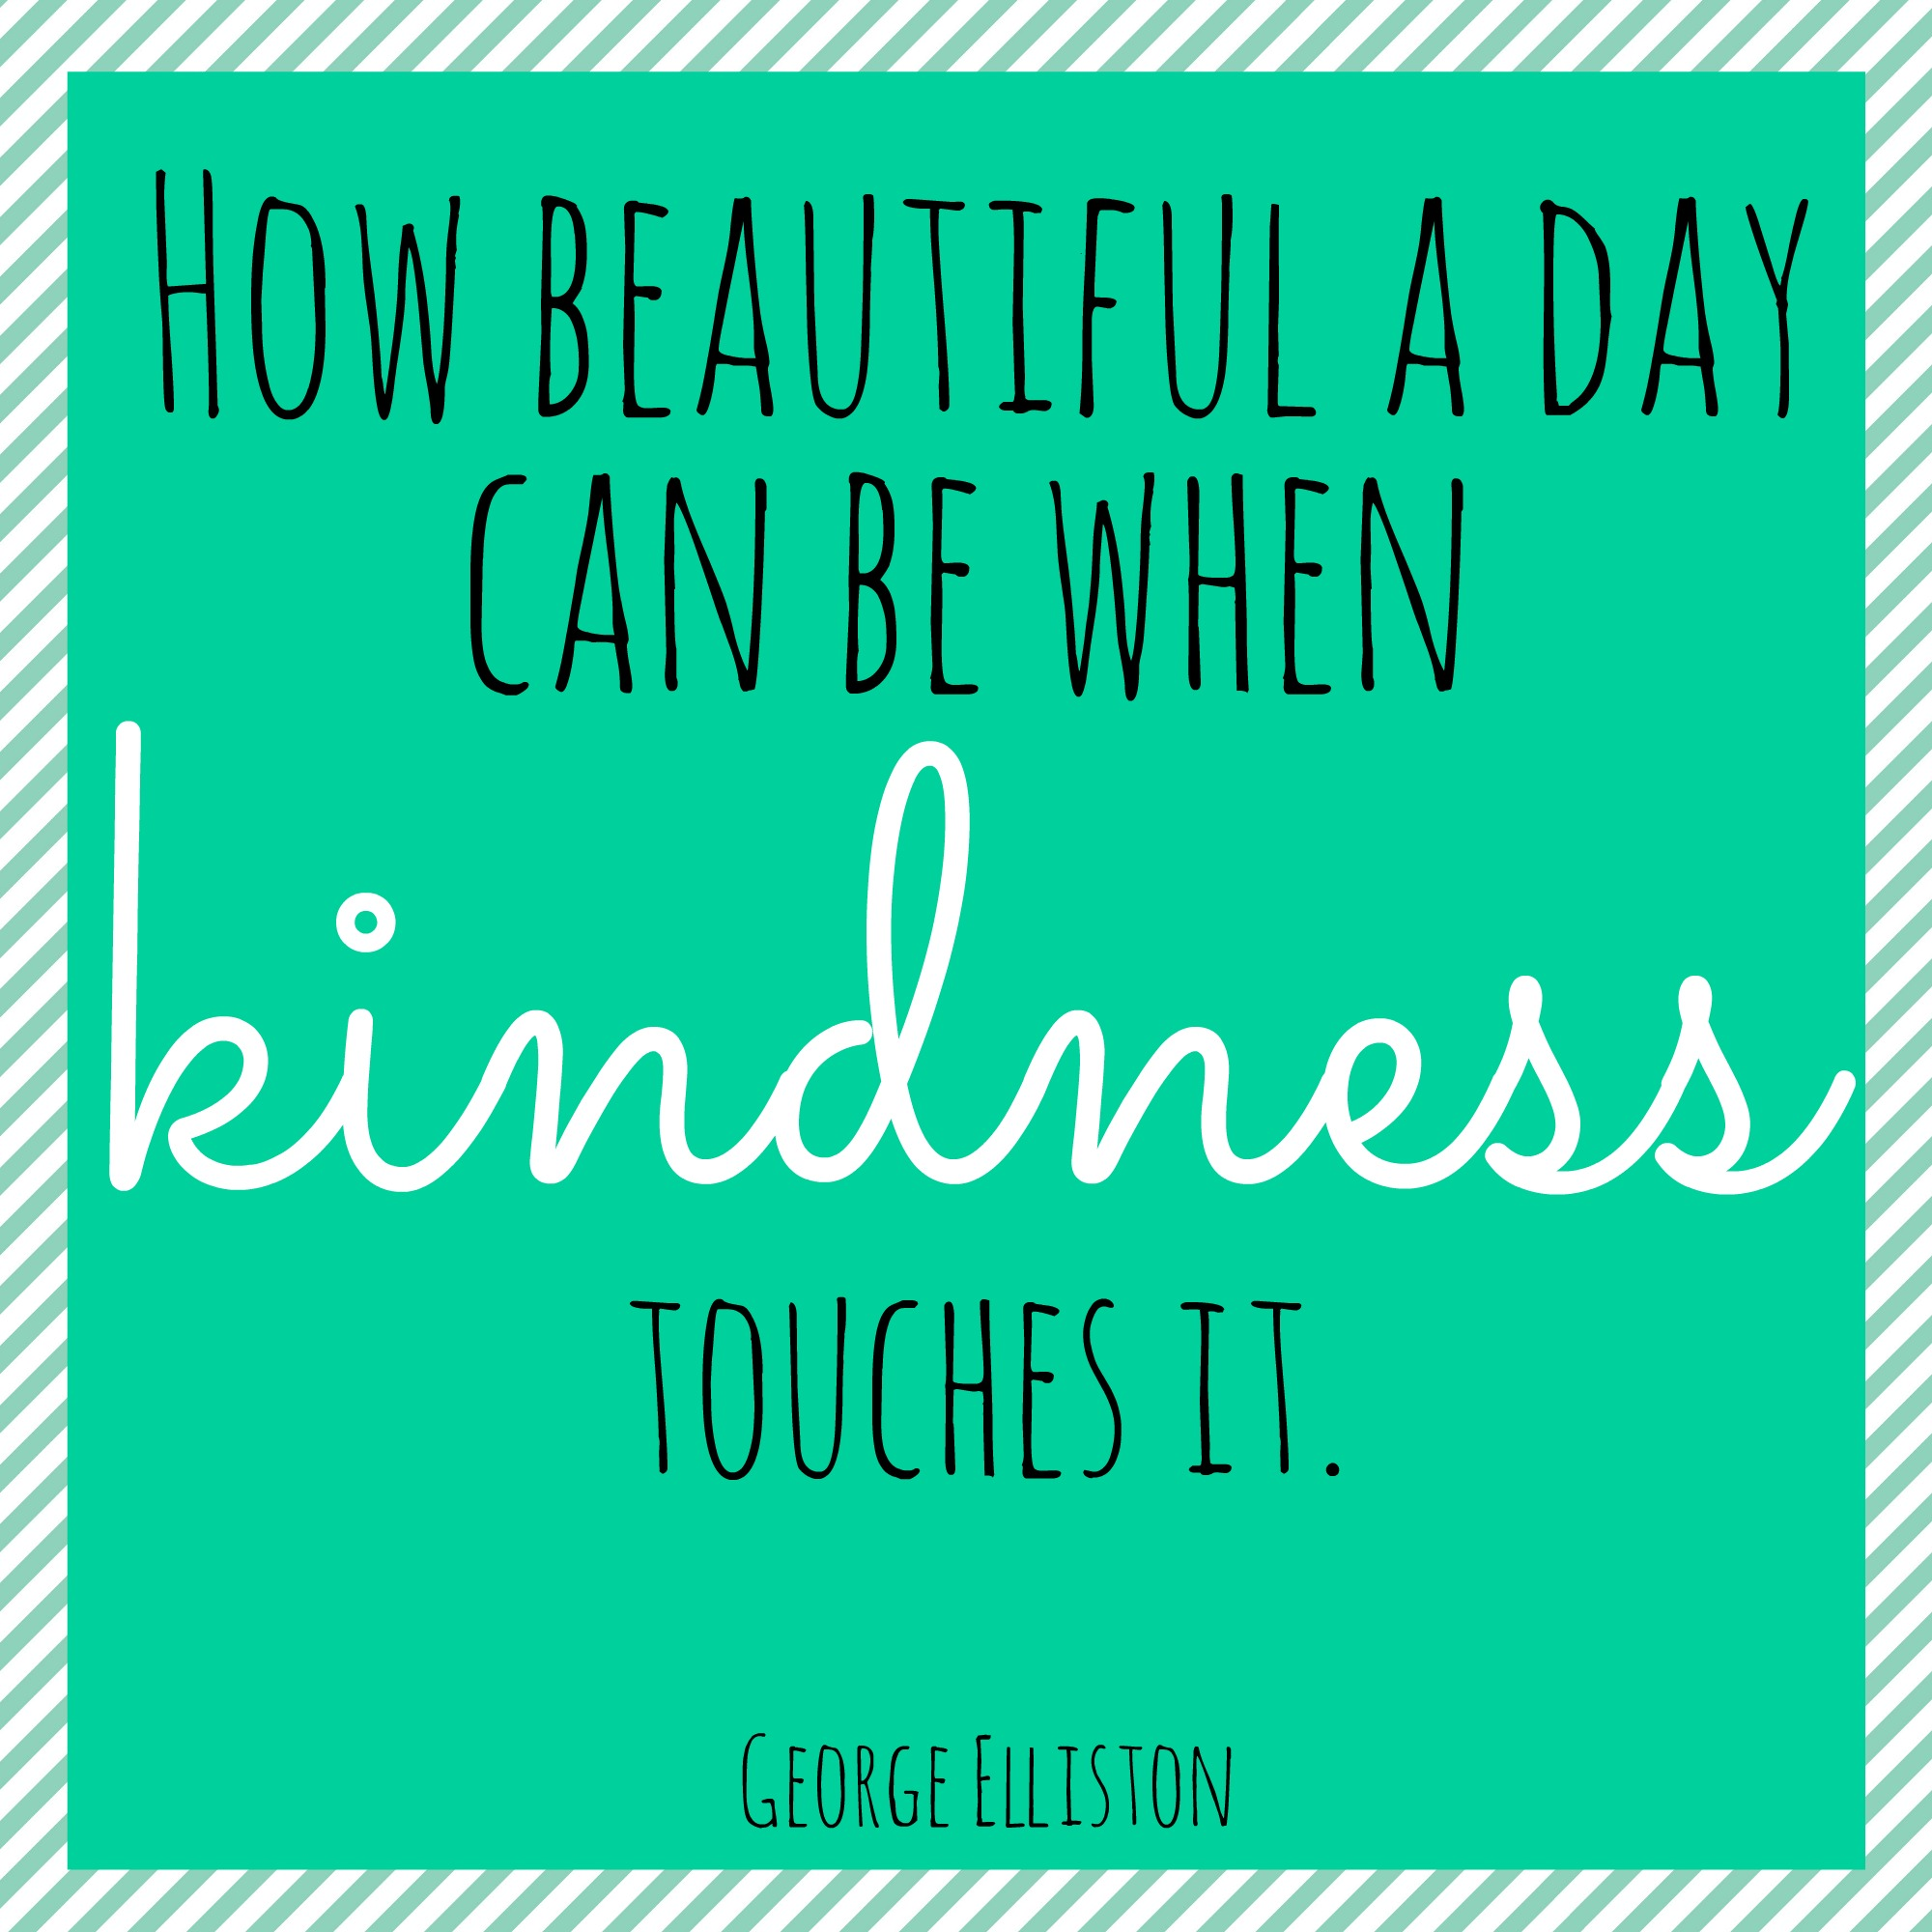 100 Random Acts of Kindness Ideas